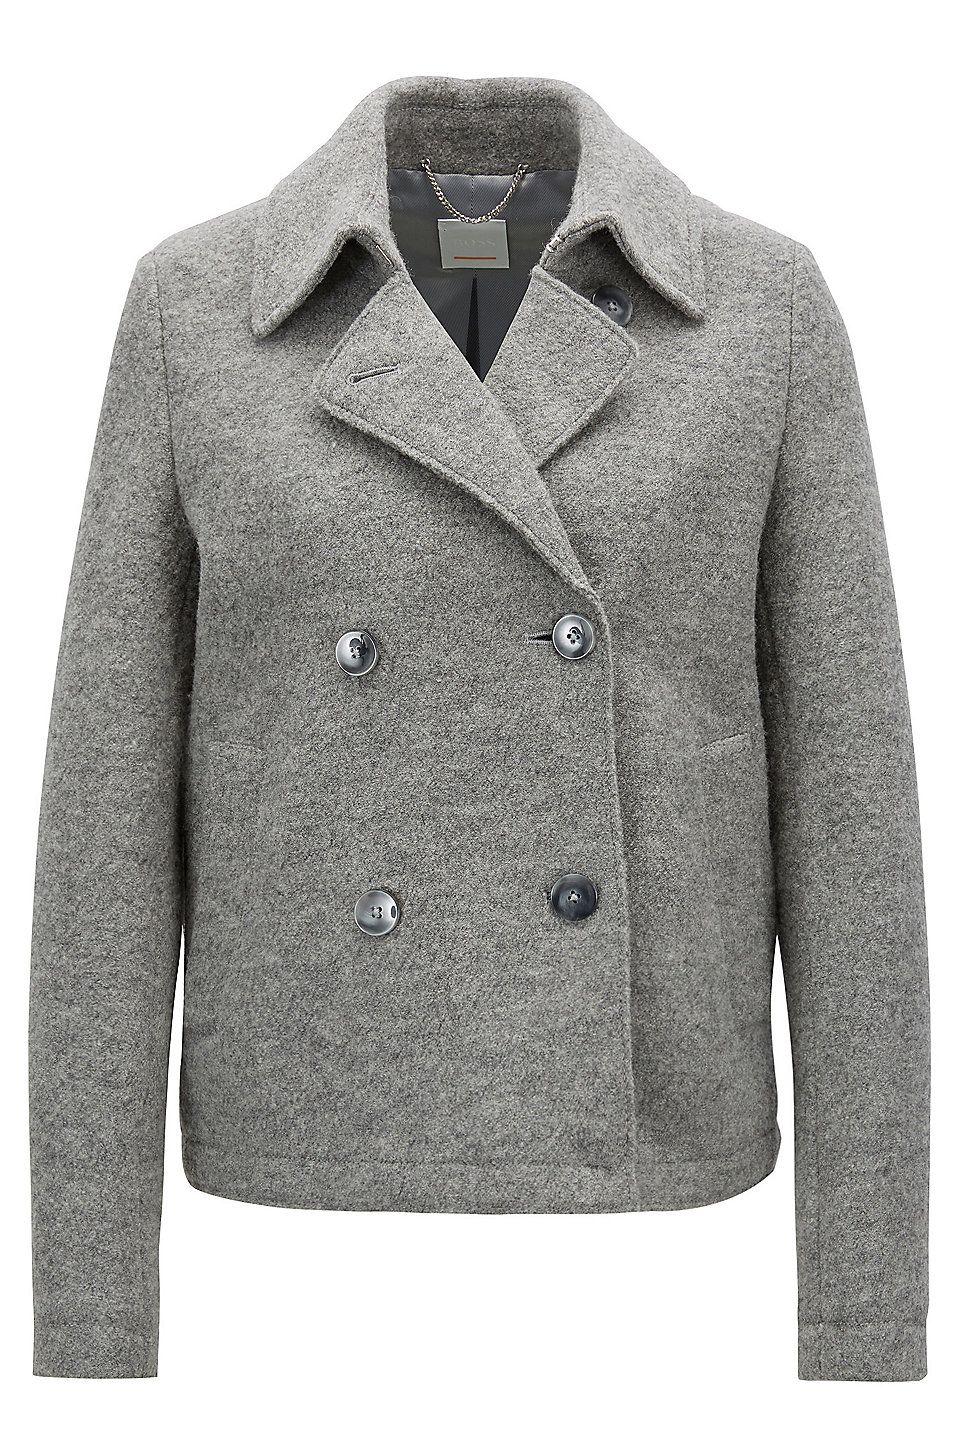 514bc59667951 Caban-style coat in virgin wool with detachable belt - Silver Jackets and  Coats from BOSS for Women for £299.00 in the official HUGO BOSS Online  Store free ...